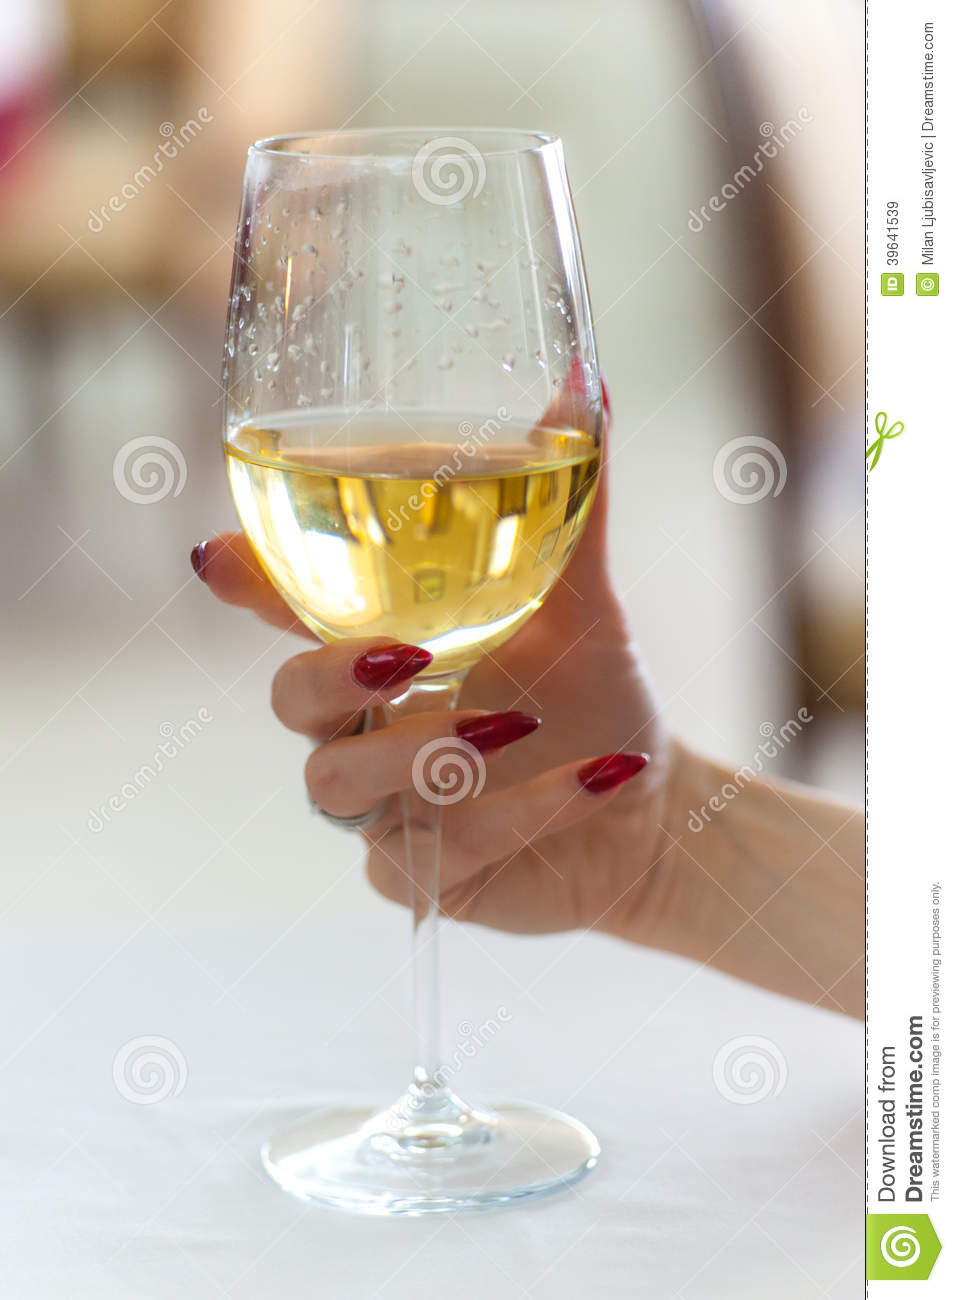 Womans hand holding wine glass stock image image of beverage womans hand holding wine glass ccuart Gallery